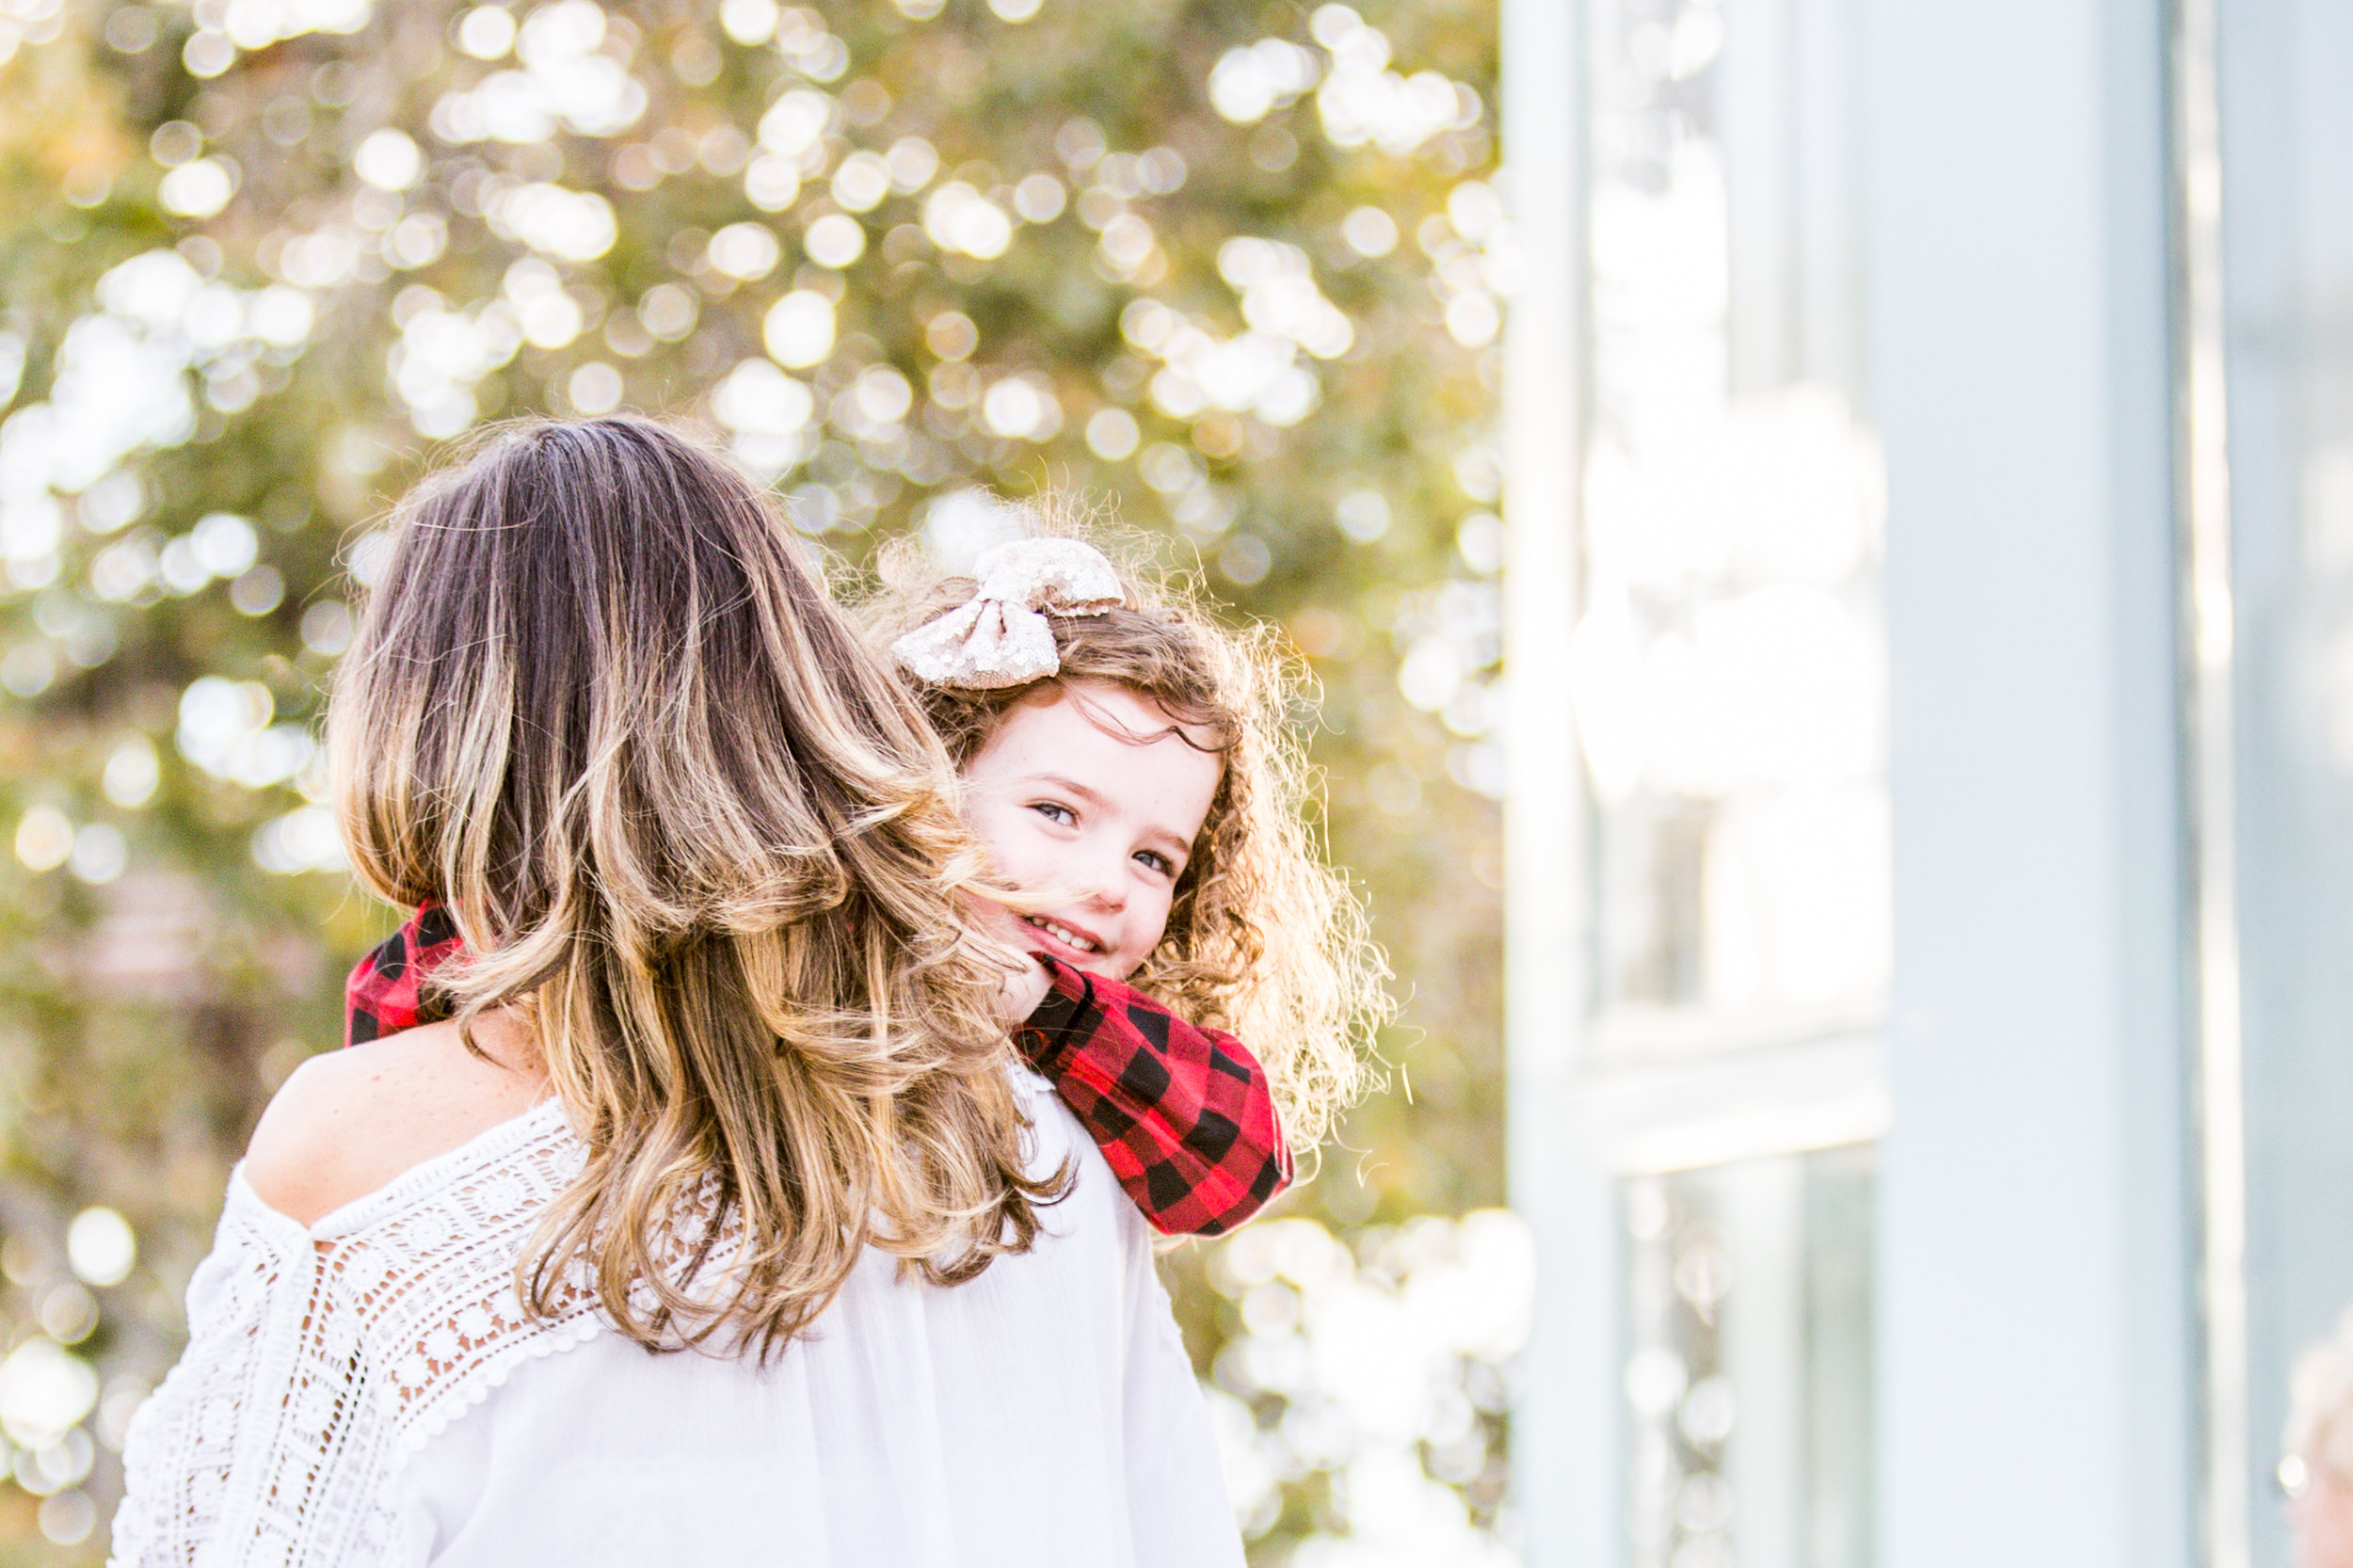 """At one point the little one tripped and got a """"boo-boo"""" on her knee. Mom just swept her up comforted her daughter and magically the tears turned into smiles. A mother's kiss can do that."""